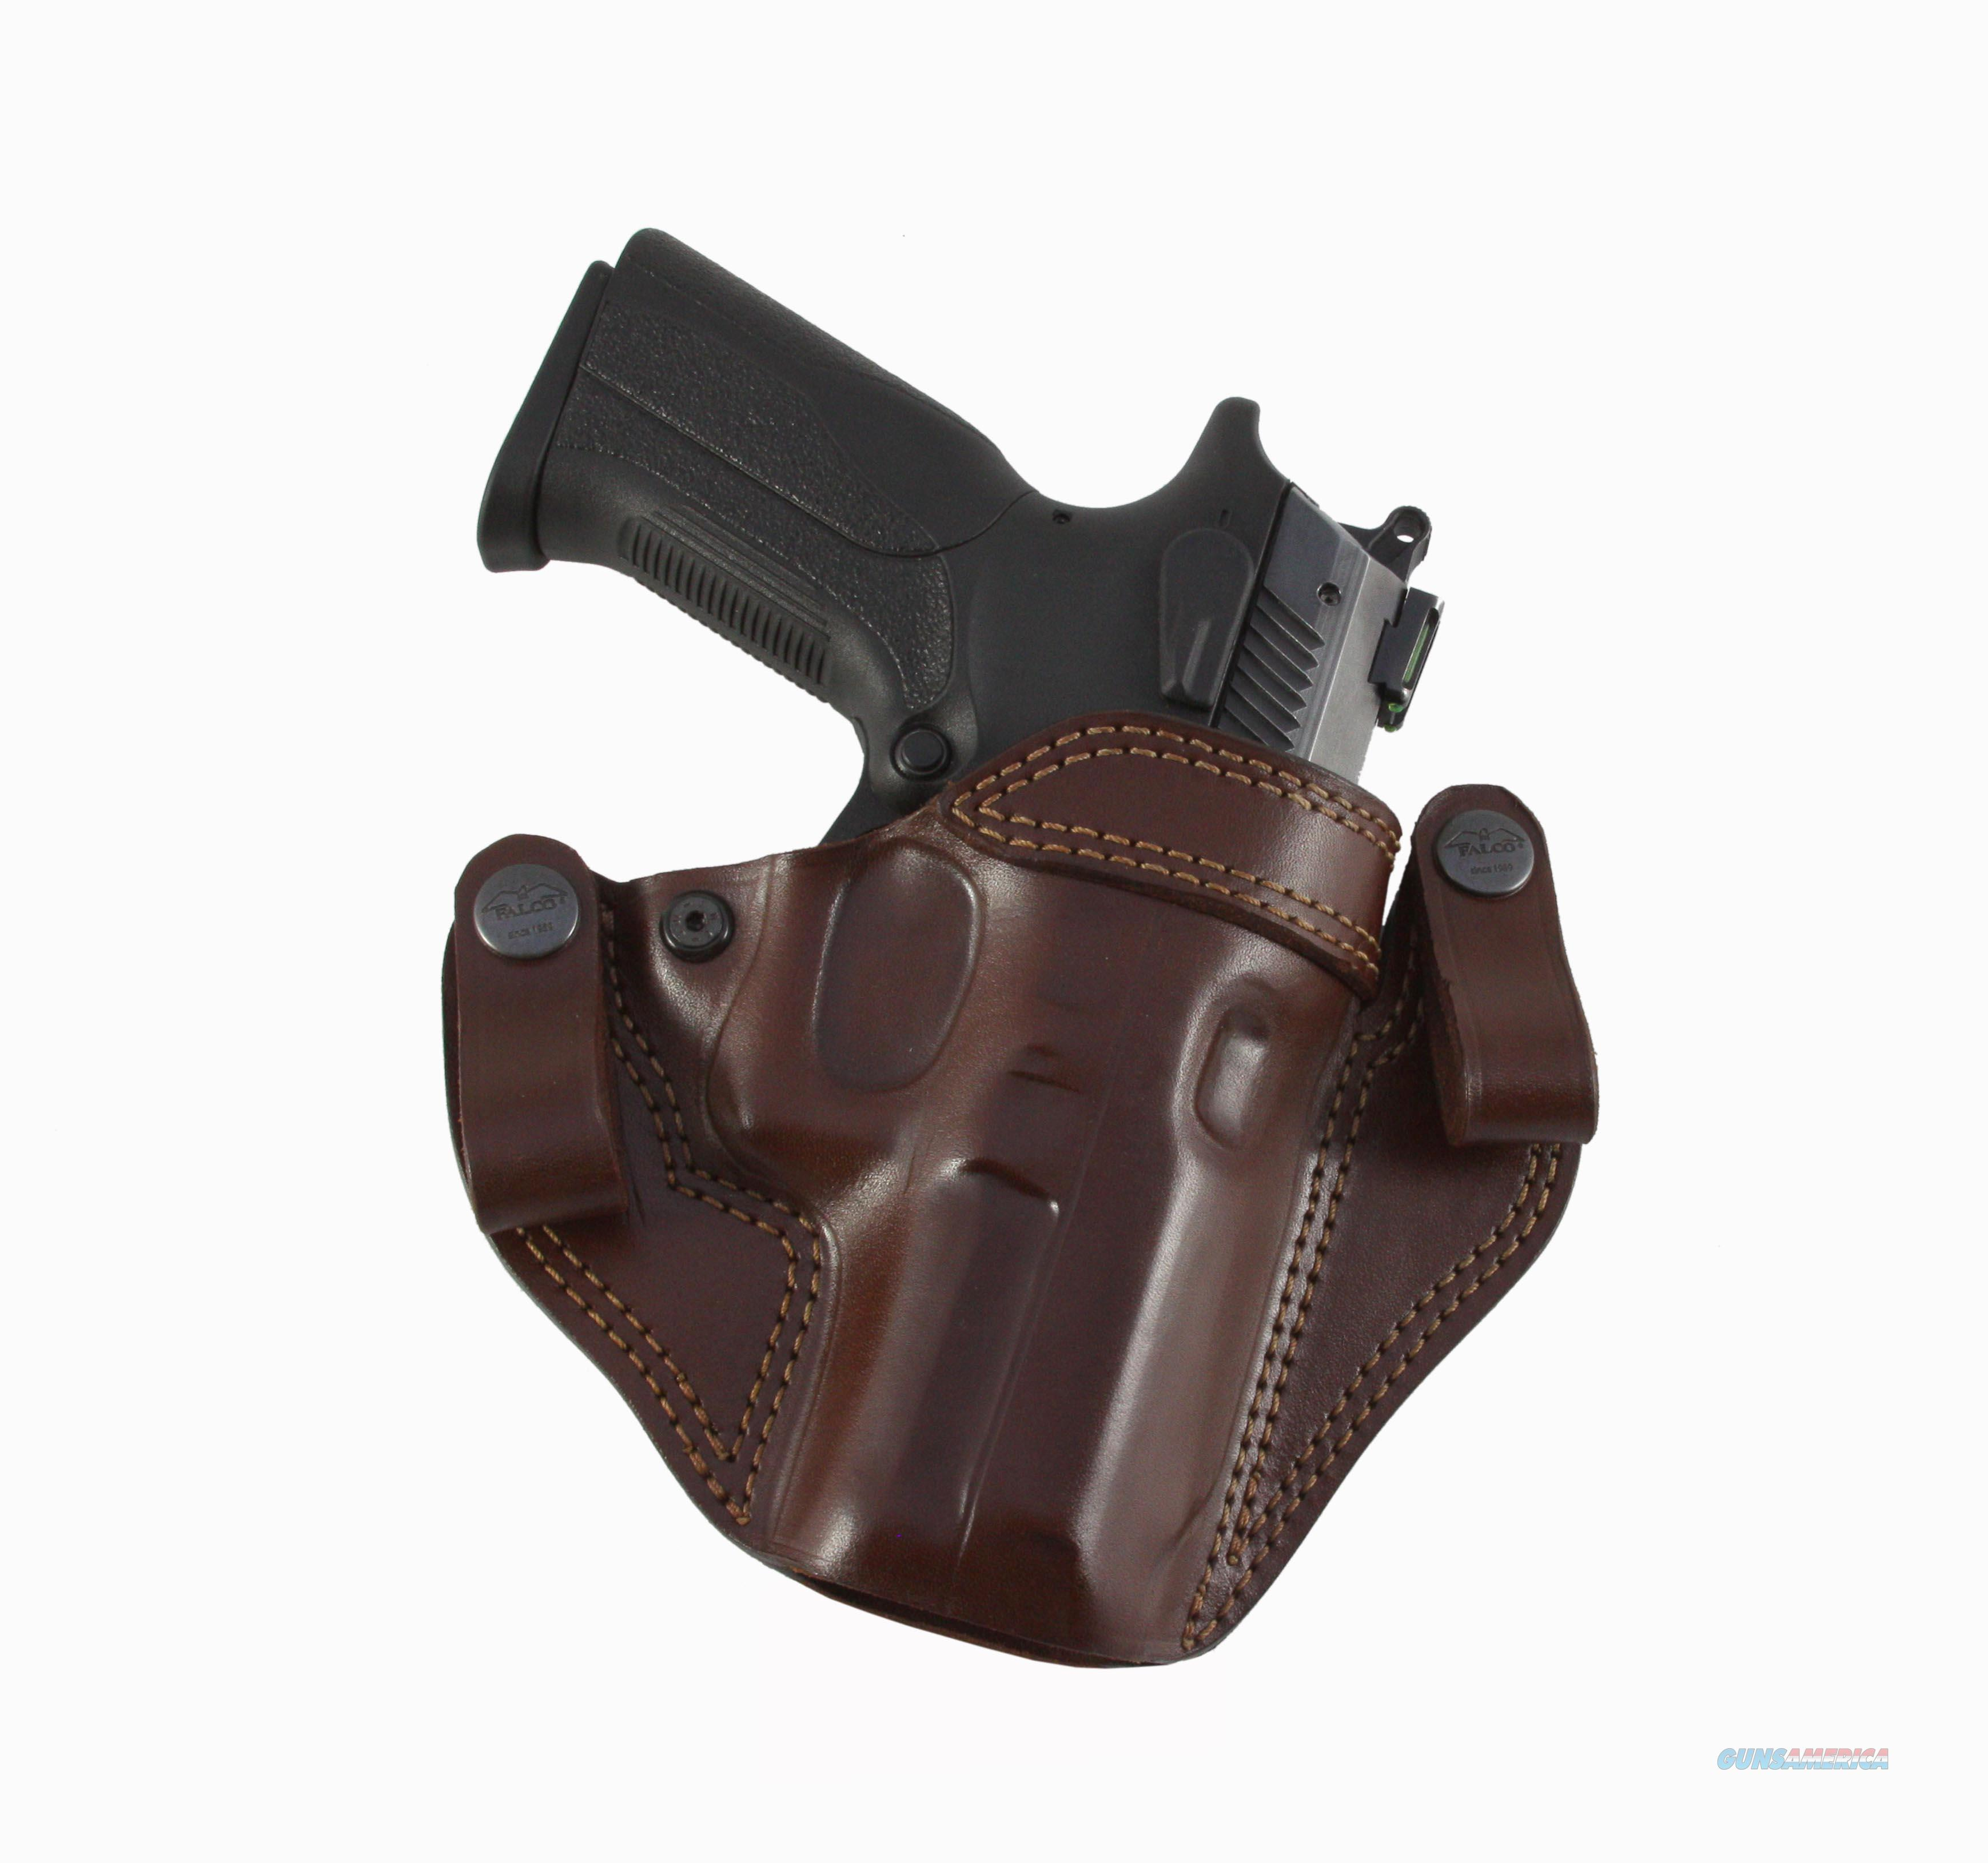 IWB Holster for Concealed Gun Carry  Springfield XD Subcompact  Non-Guns > Holsters and Gunleather > Concealed Carry